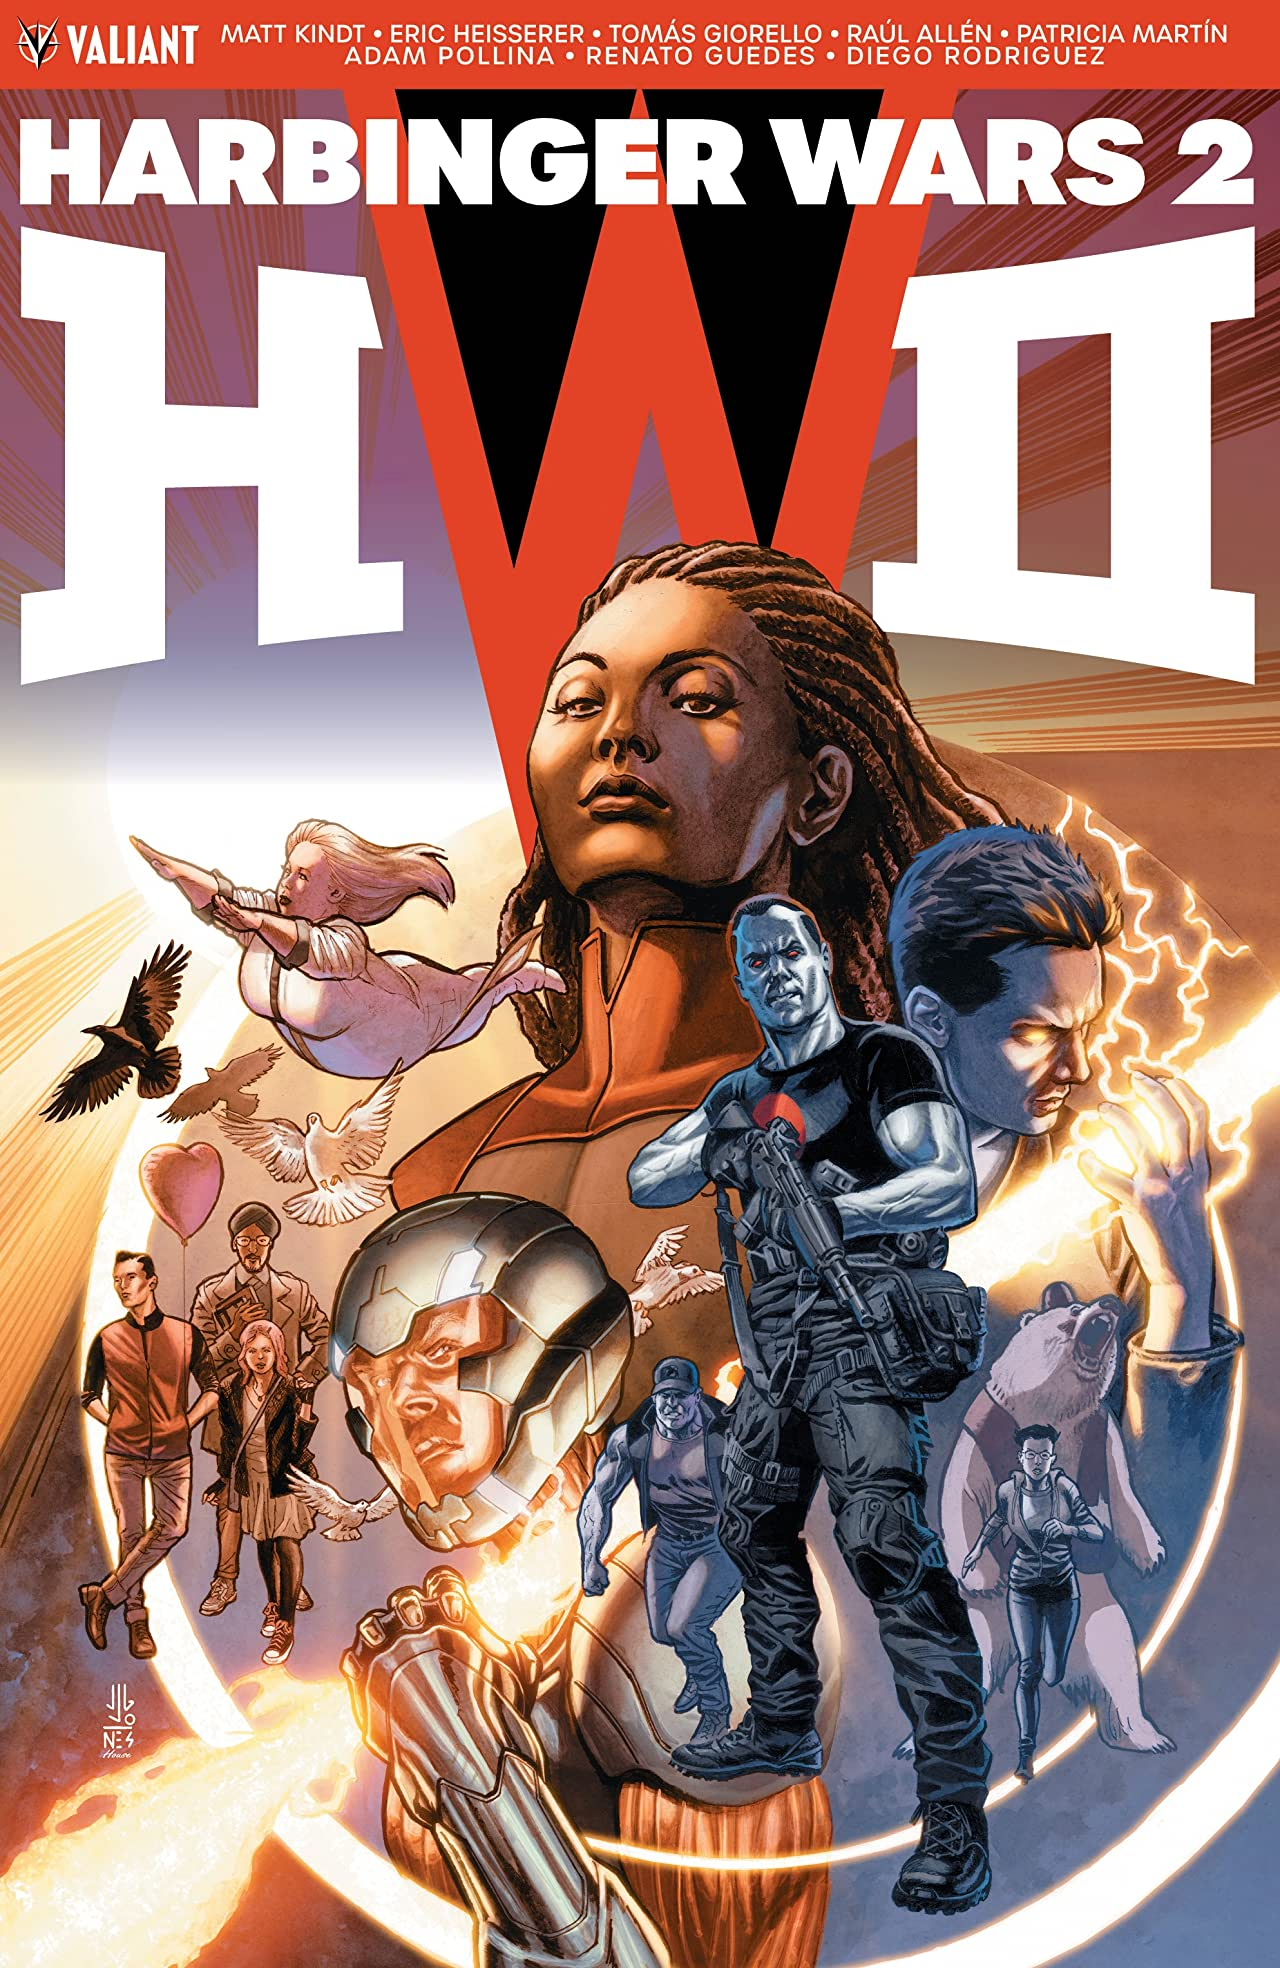 Harbinger Wars 2